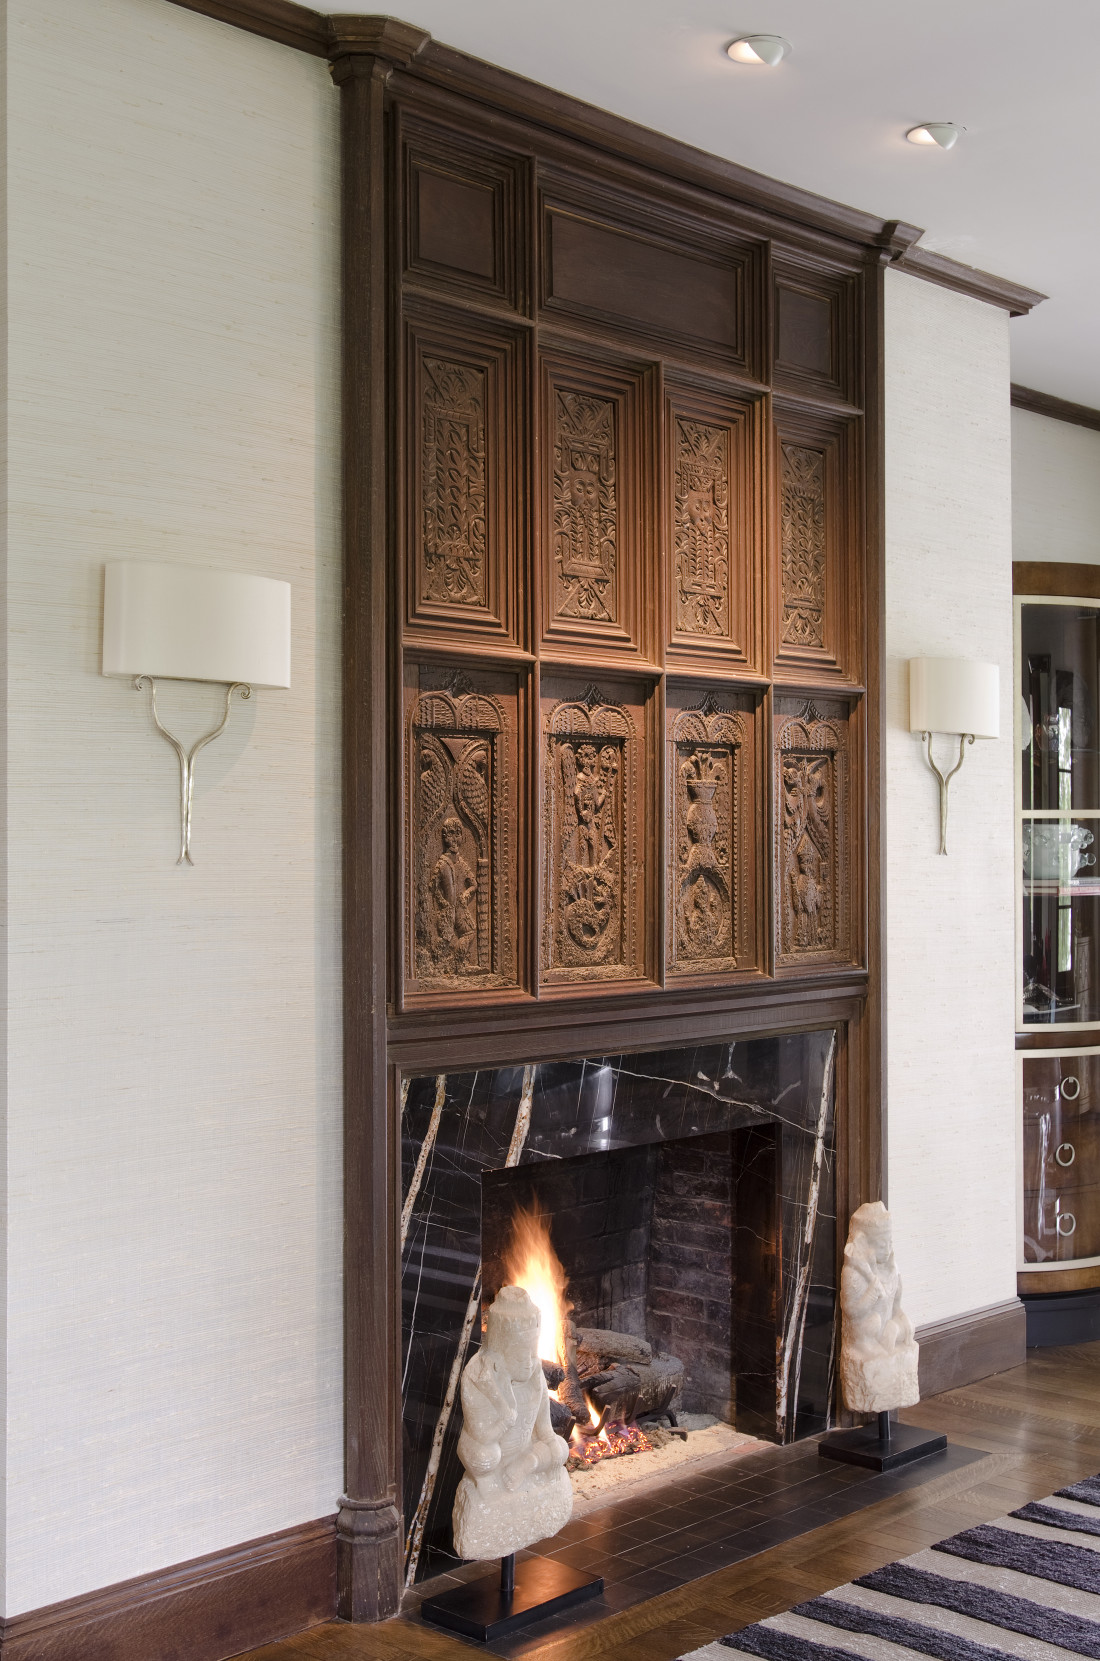 Marble Fireplace with reclaimed Wood Paneling